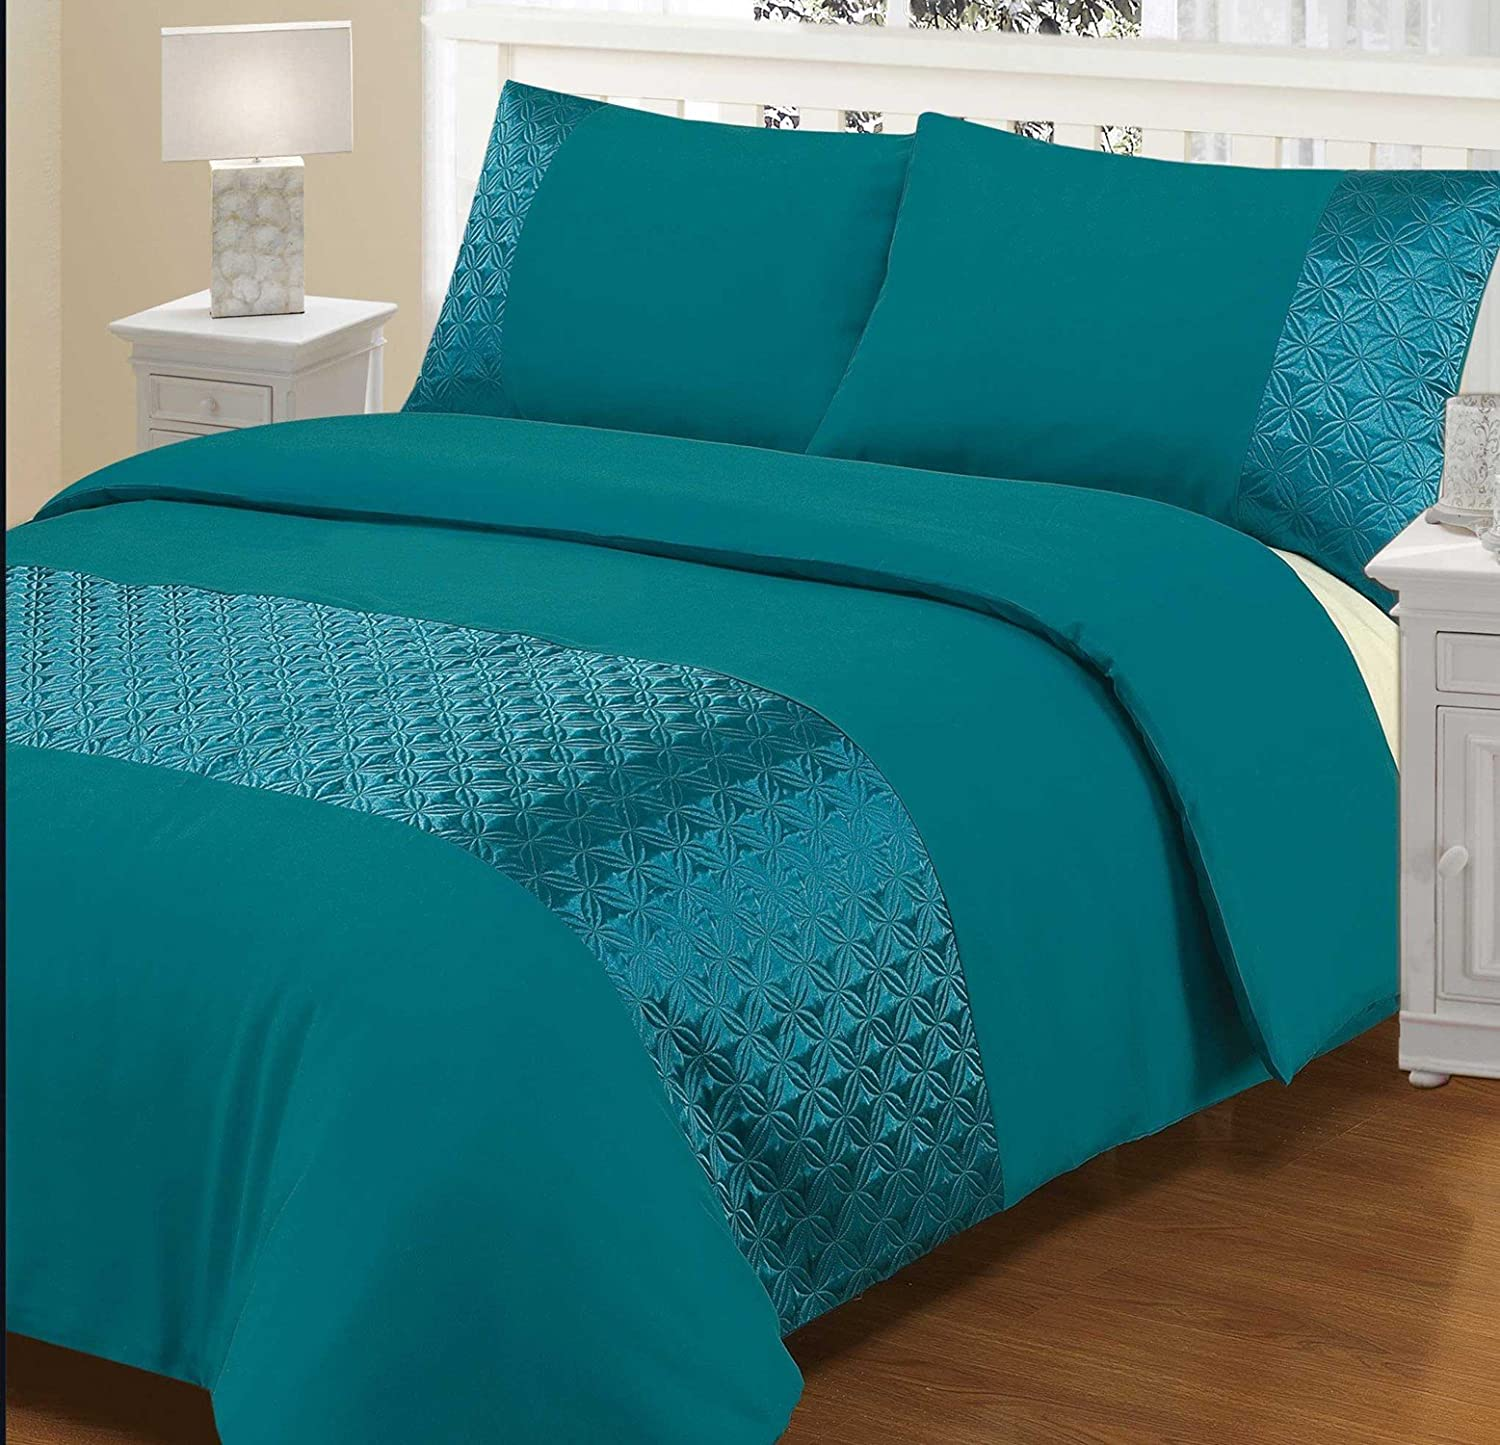 within n odyssey mykonos bedding by collection natori nice echo design ideas samarkand teal of cover the parvani tides duvet bunch